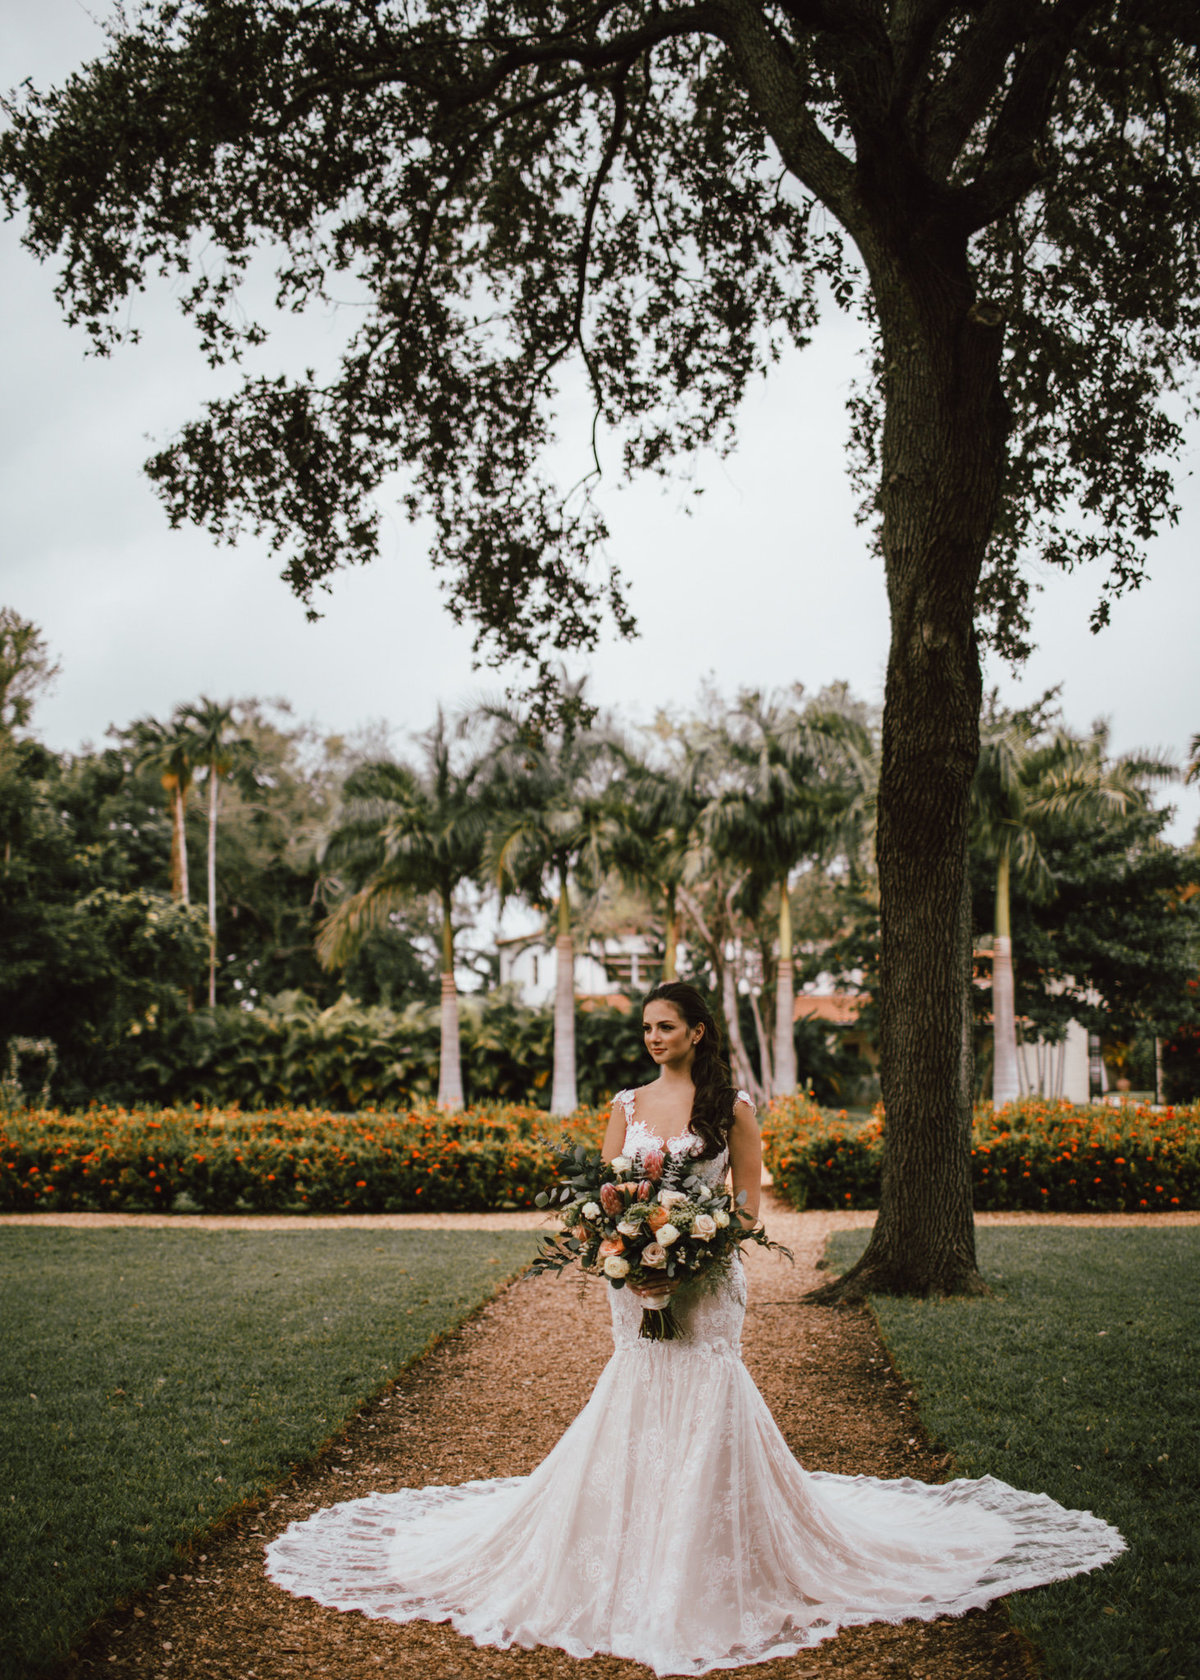 Miami-Wedding-Planner-Gather-and-Bloom-Events-283A7552_websize